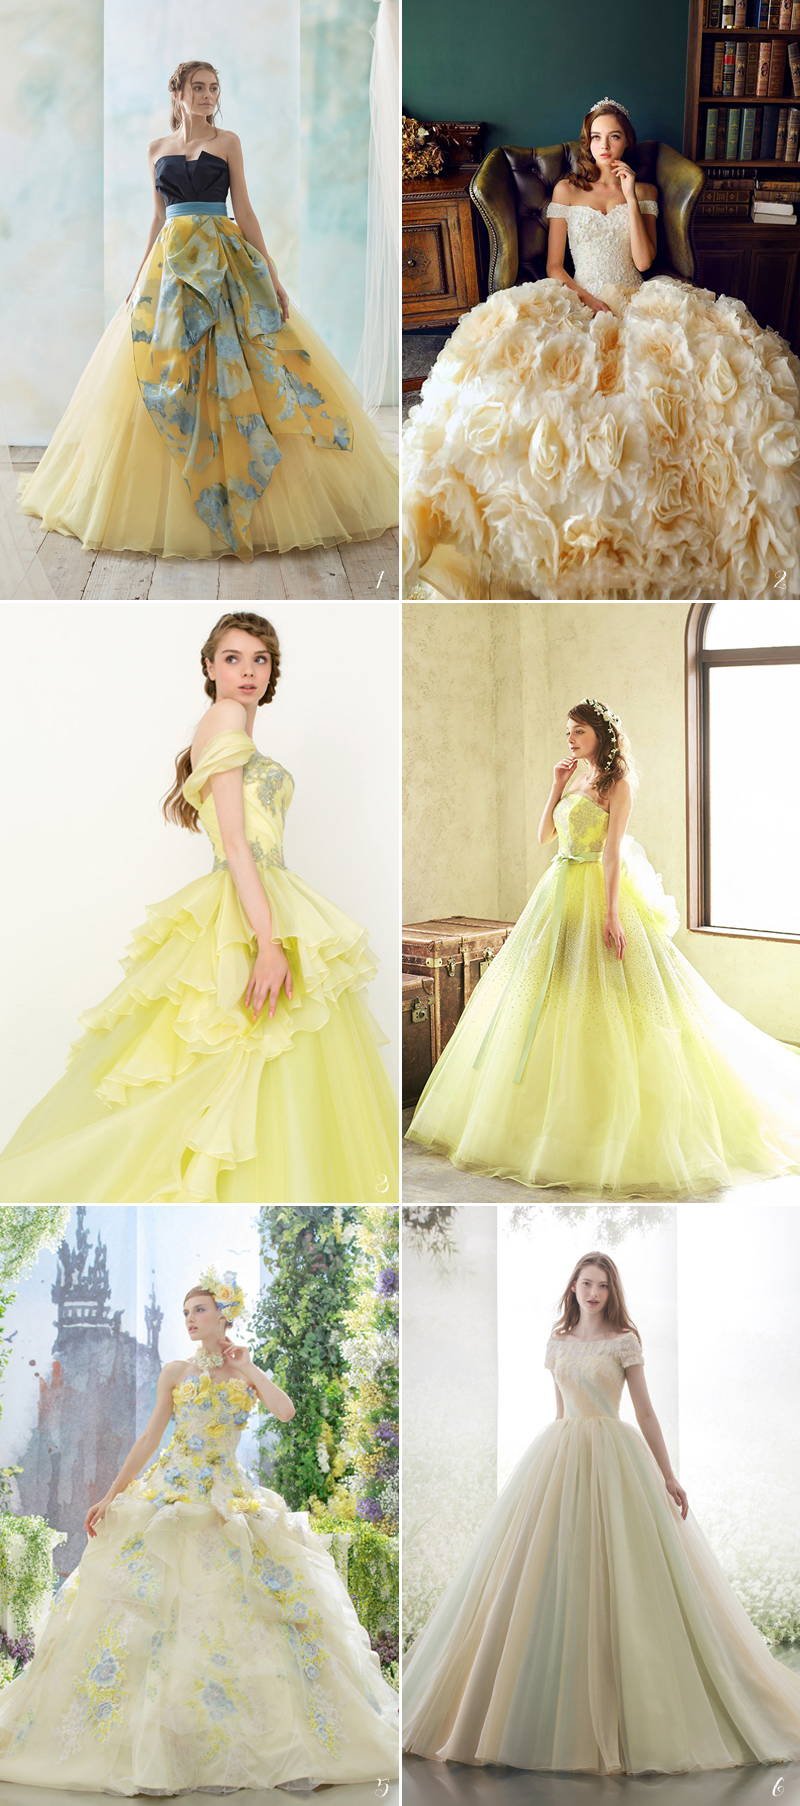 belle wedding dresses ideas with touch of yellow